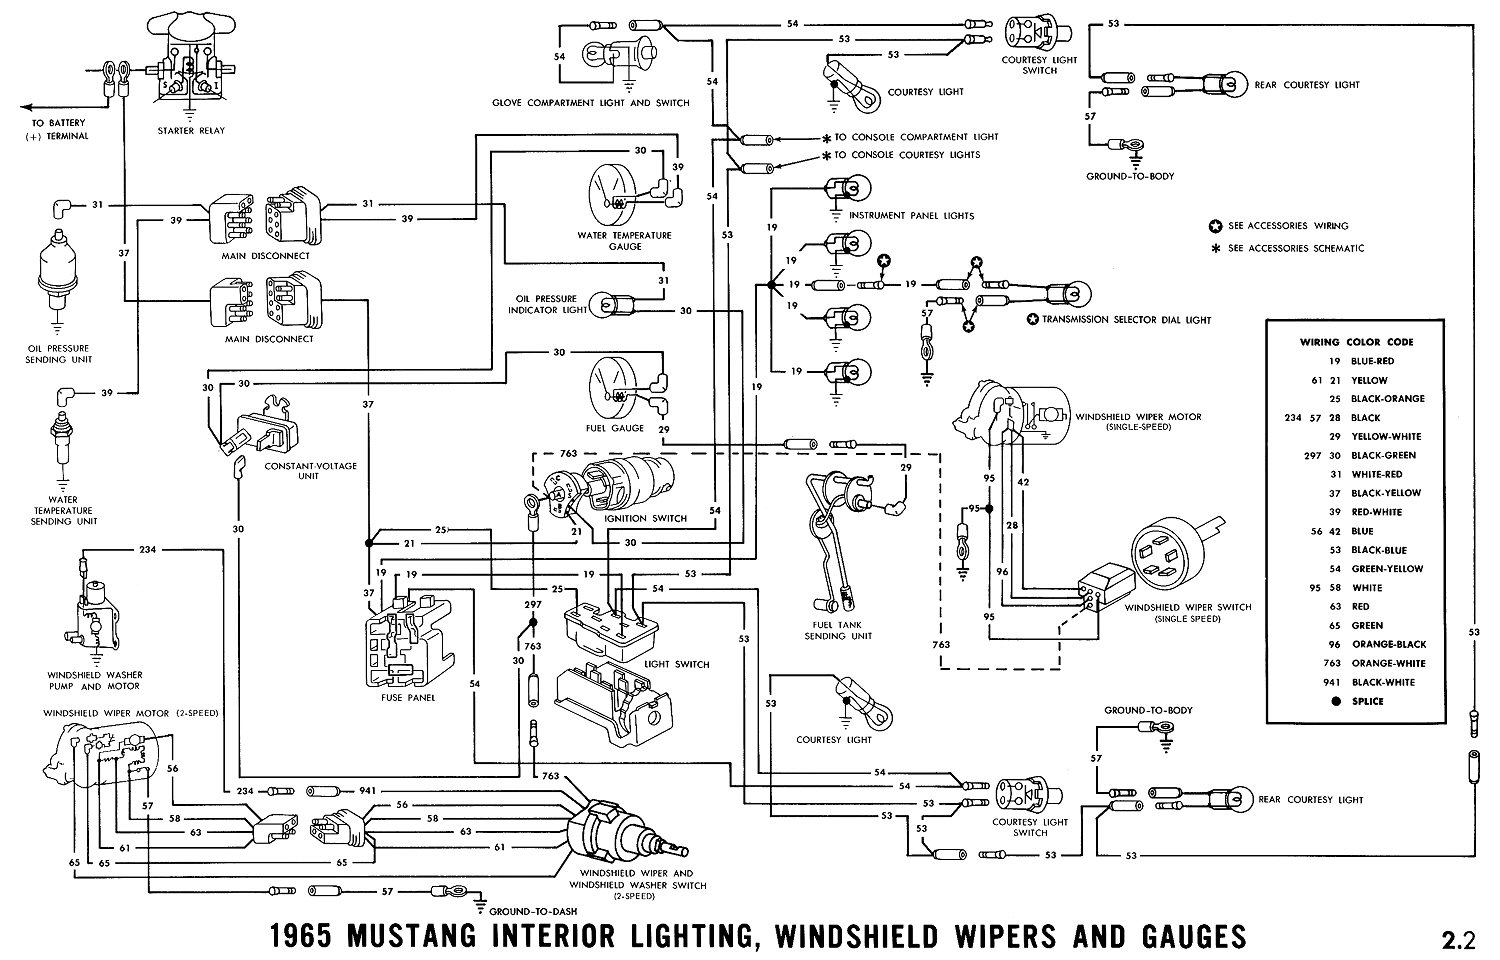 hight resolution of 65 econoline wiring diagram for dash wiring library rh 73 bloxhuette de 1969 ford fairlane wiring diagram ford pinto wiring harness